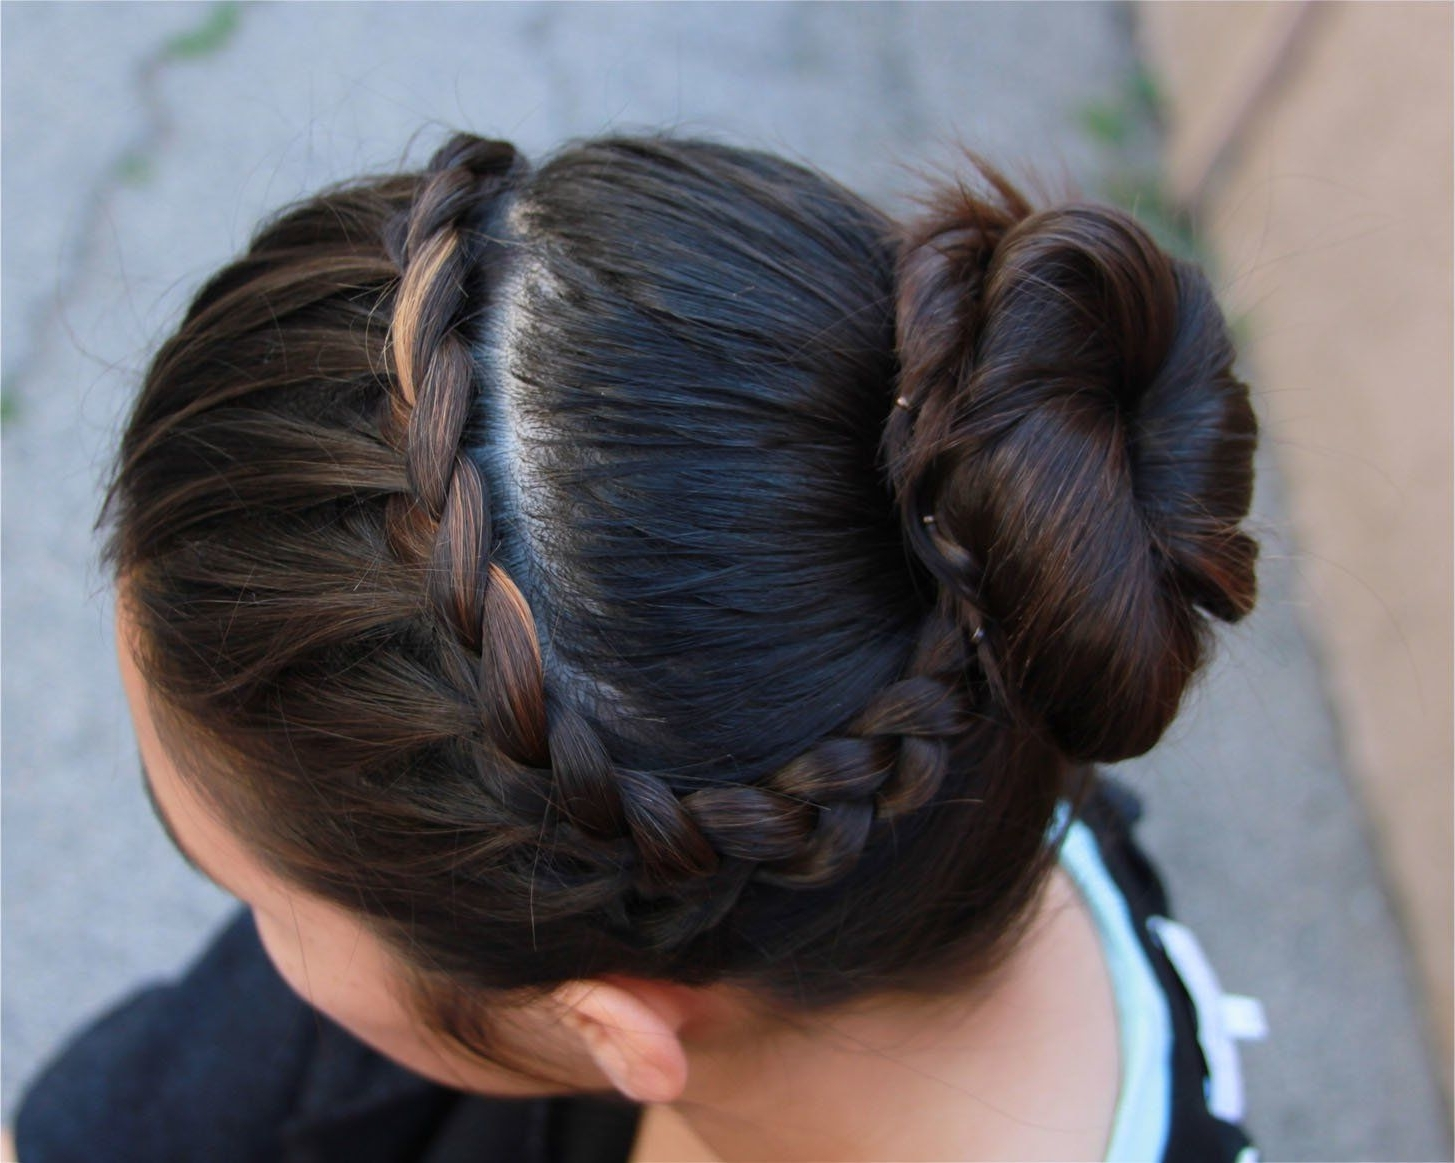 French Braid, Braid Hair And Braid Intended For Widely Used Braided Hairstyles For Dance (View 6 of 15)